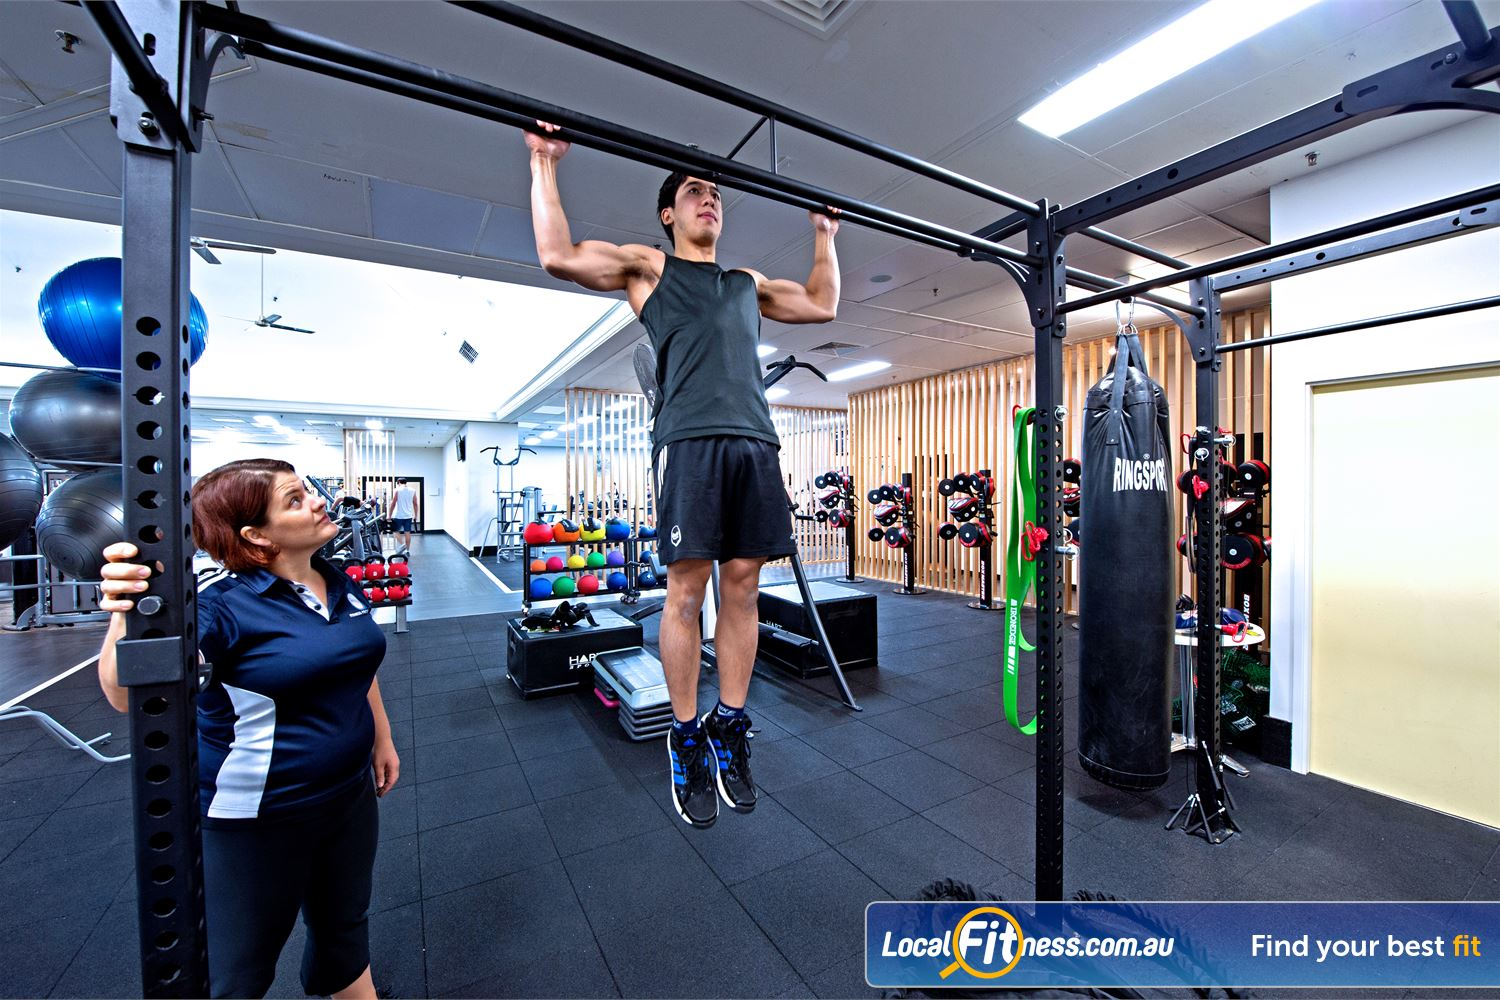 Goodlife Health Clubs Near Peppermint Grove Get into functional training at Goodlife Cottesloe.